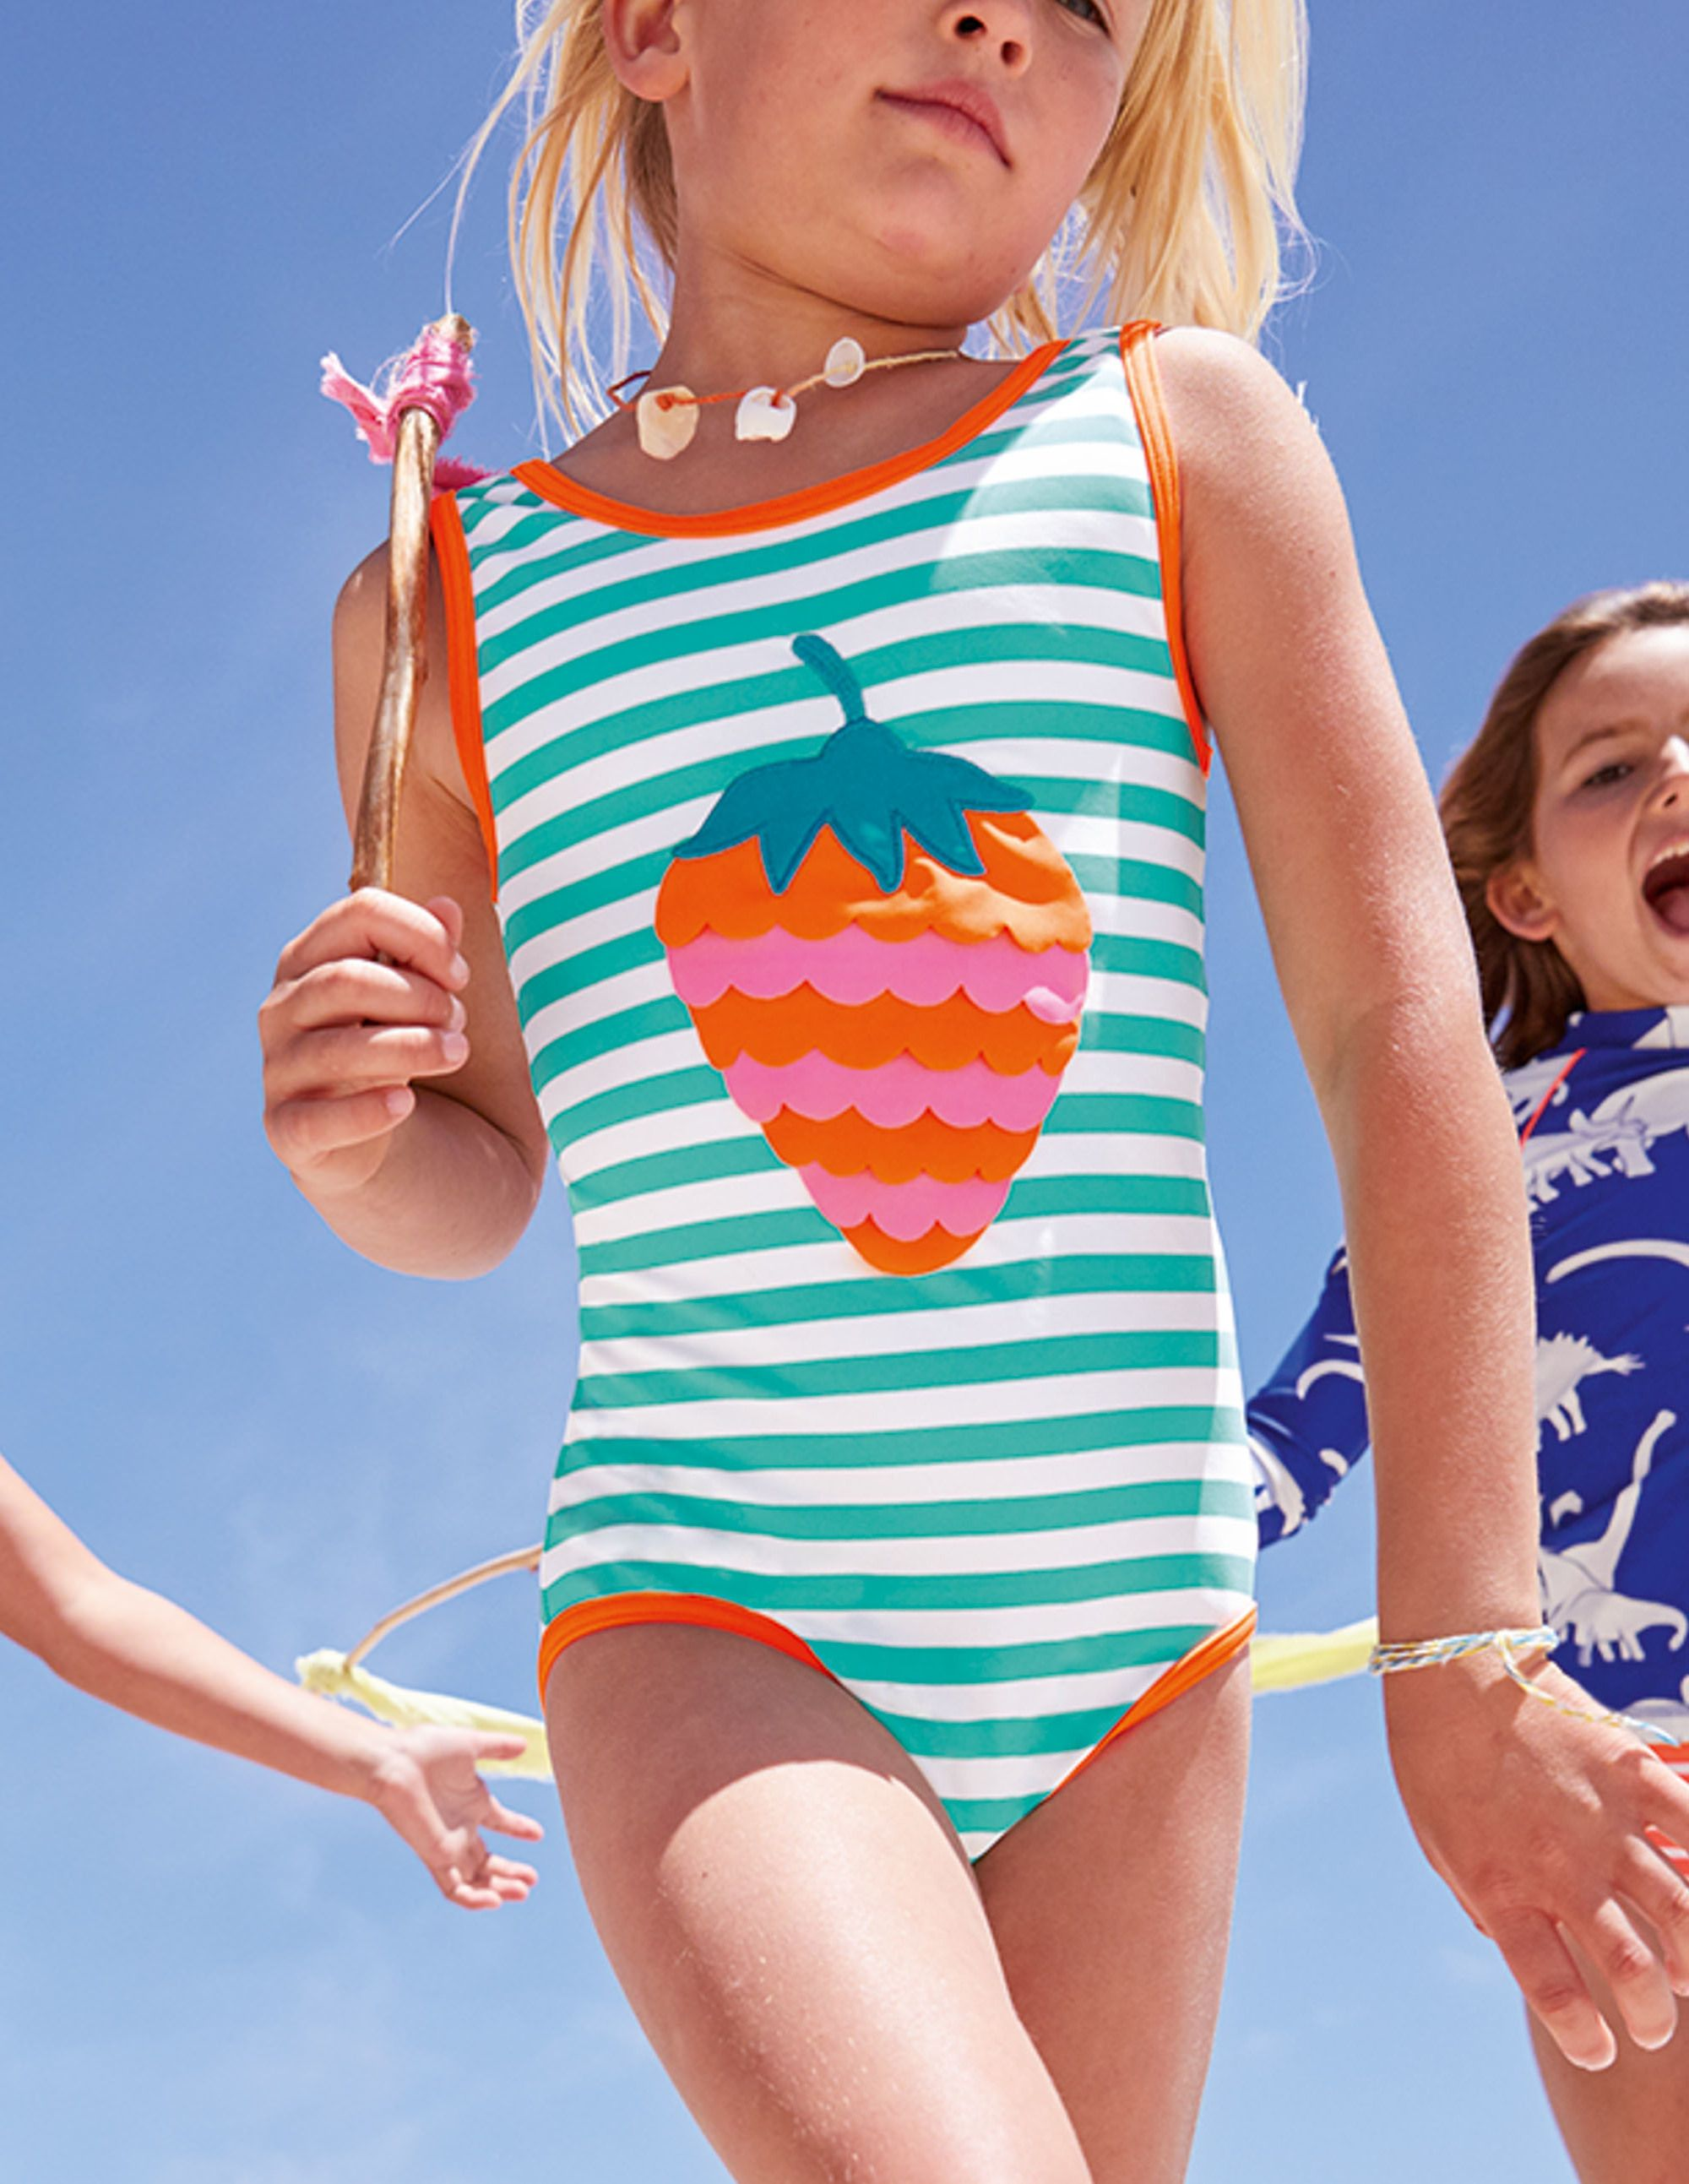 eb9fa5ebbbfff Fun Detail Swimsuit G0423 Swimsuits at Boden | Plaża | Plaża